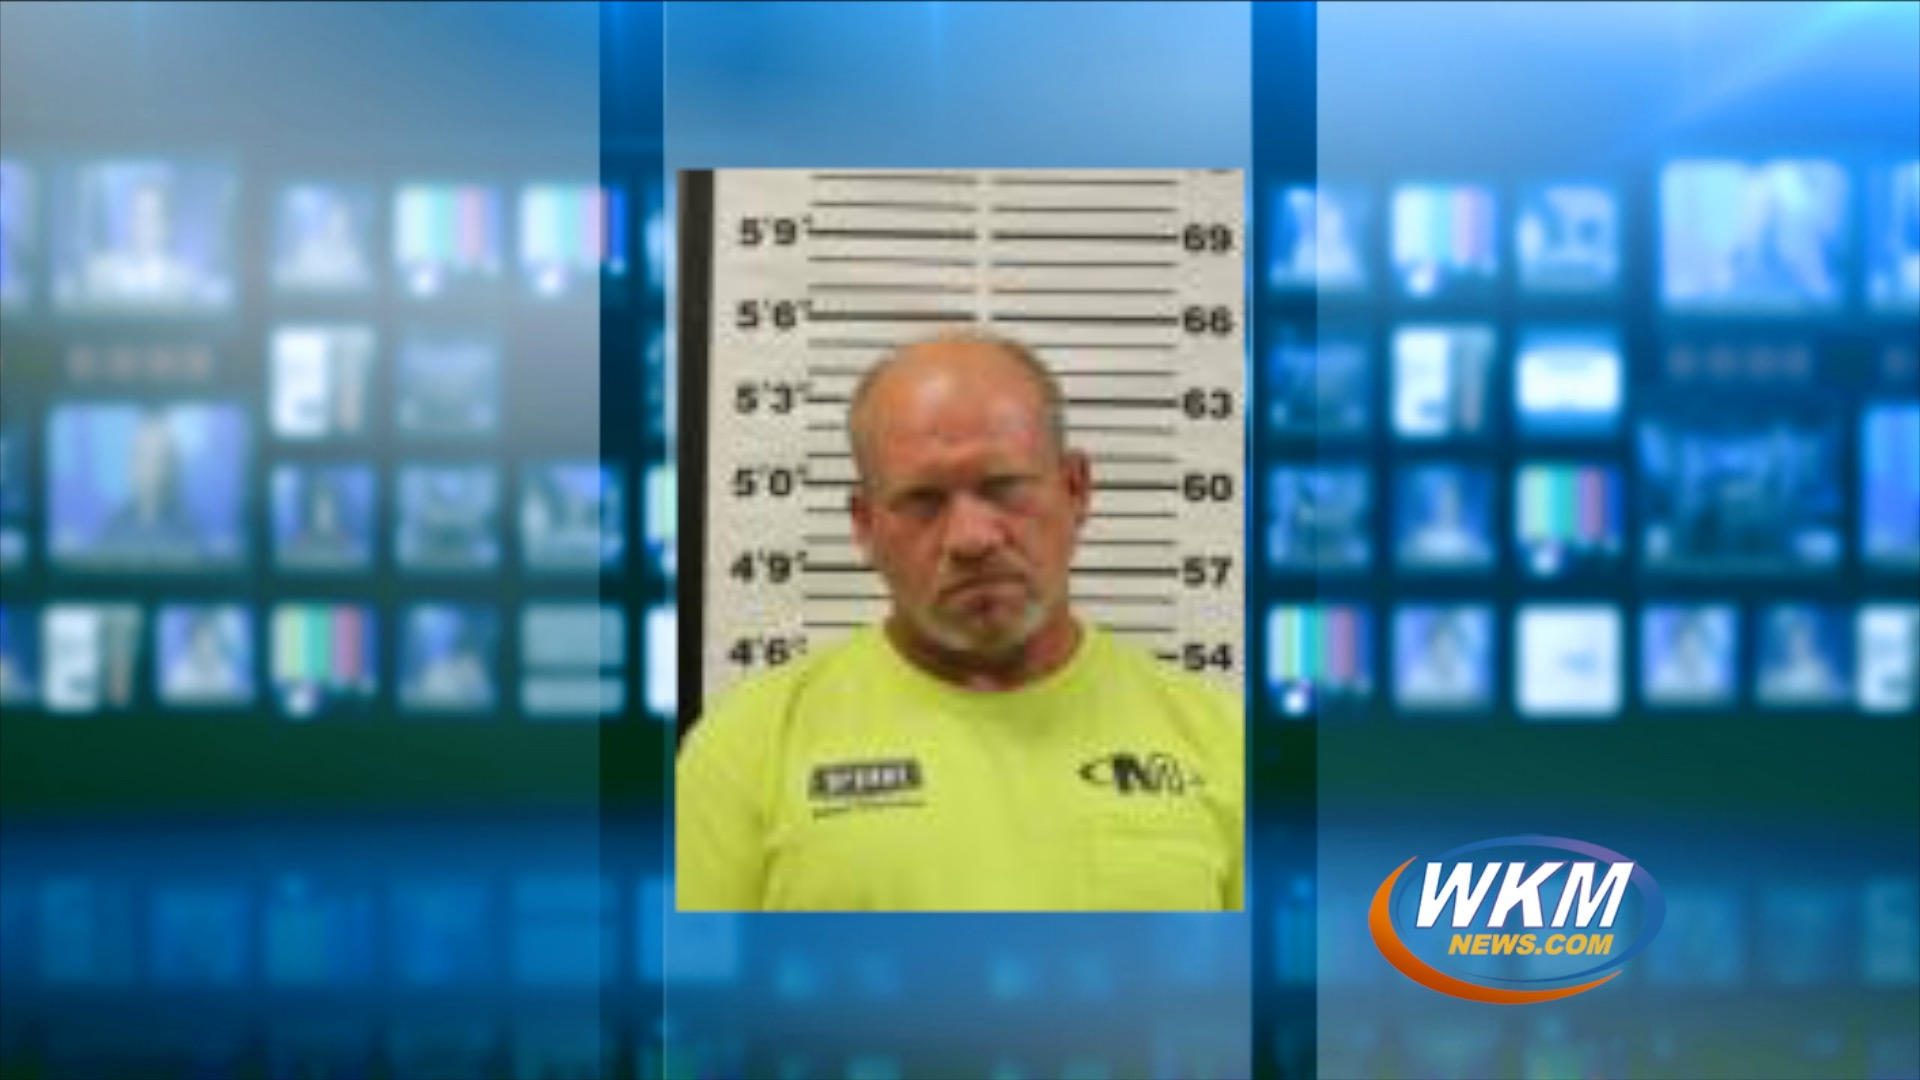 Jefferson County Man Arrested for Child Molesting